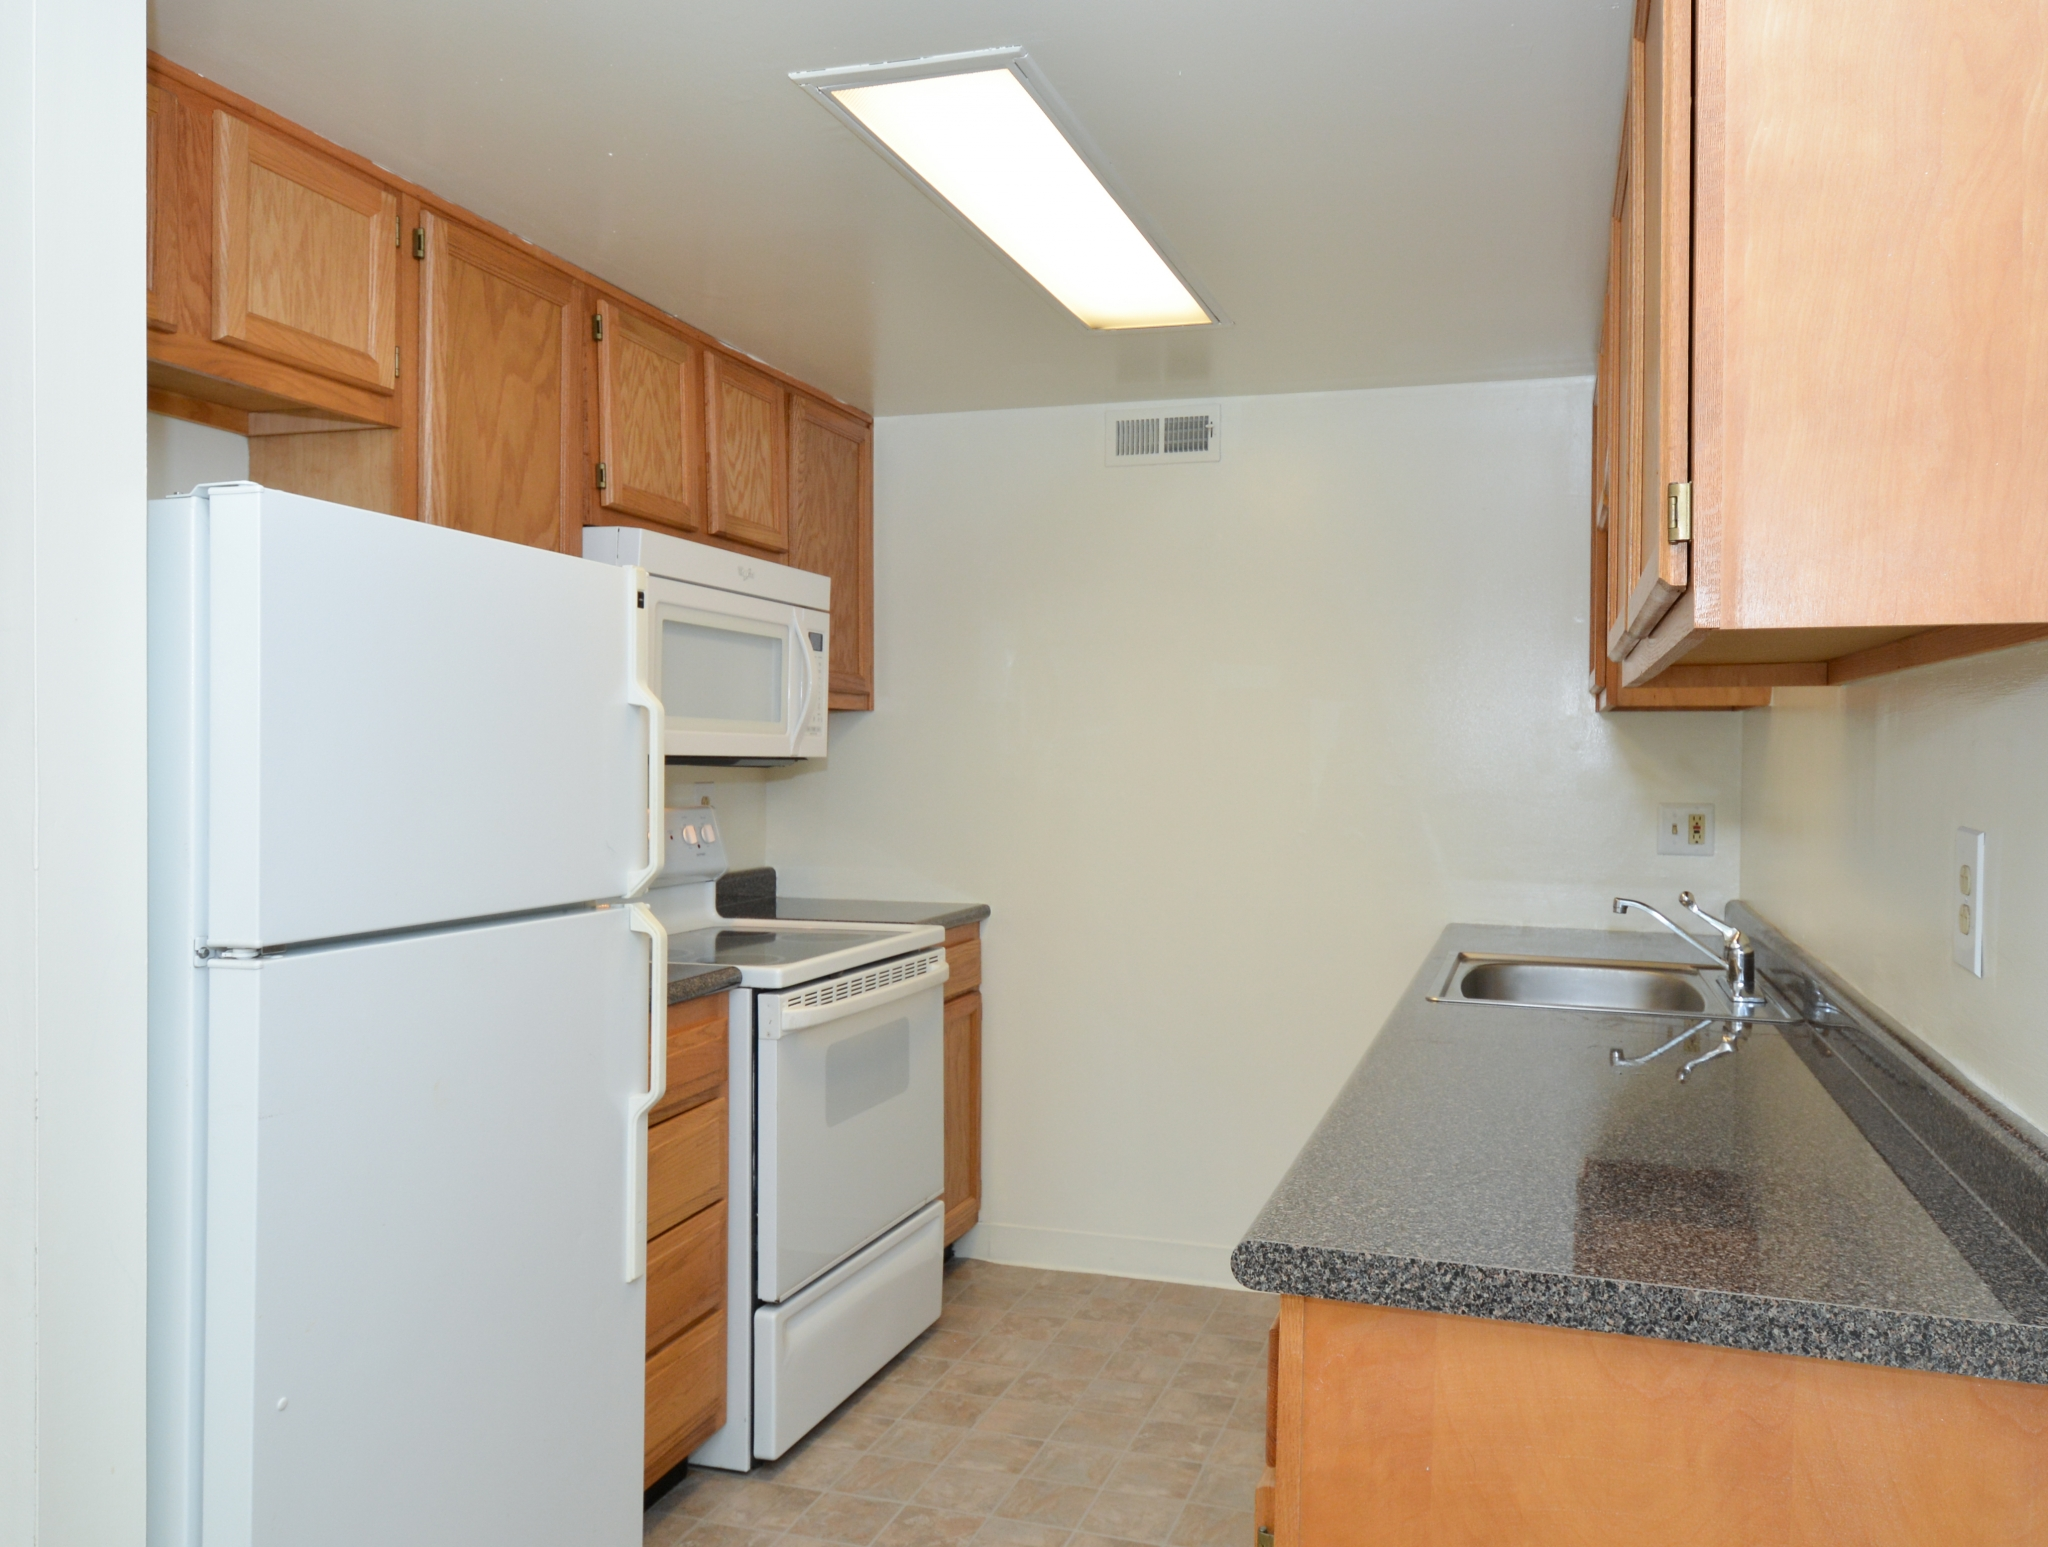 Princeton Orchards Sample Kitchen with Wood Cabinets   Apartments for Rent in South Brunswick, NJ